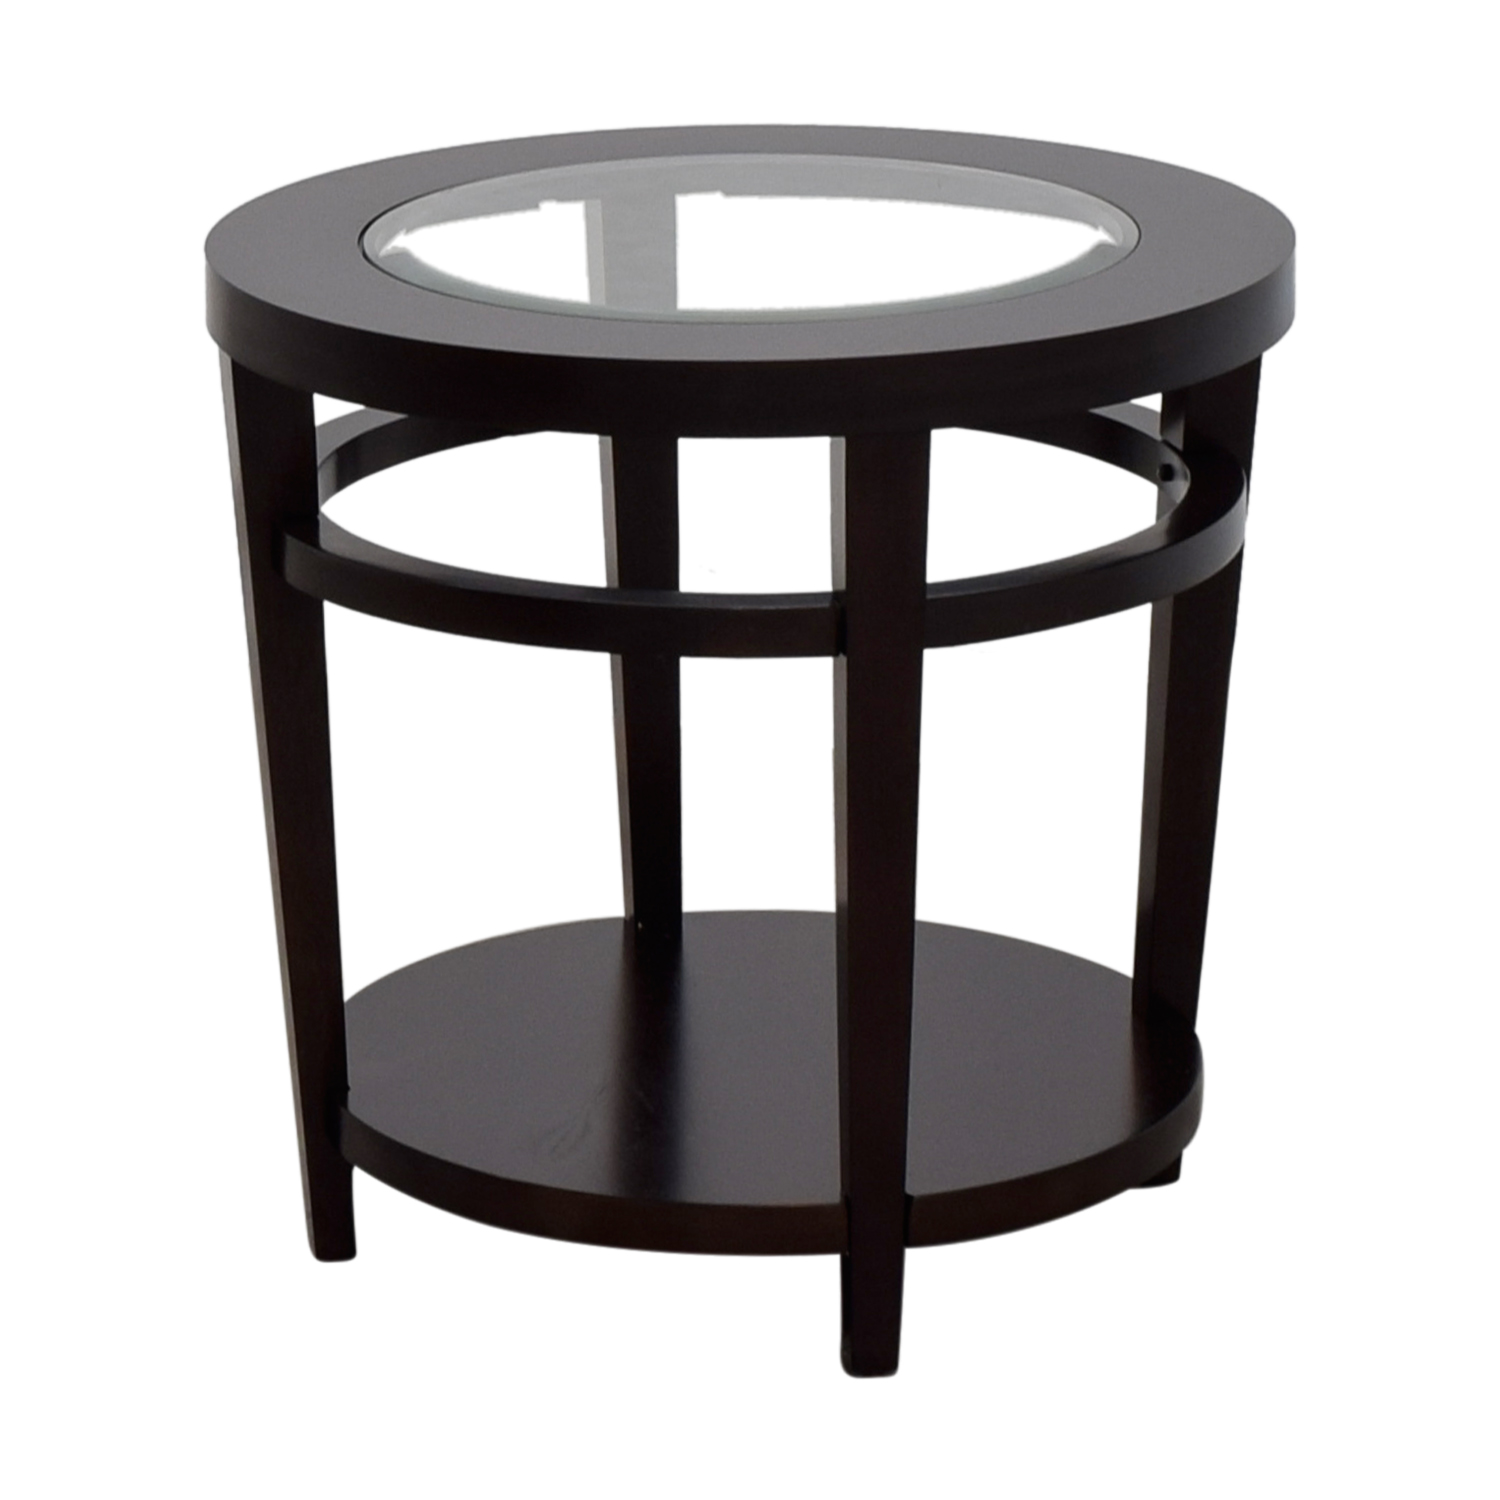 off macy avalon round wood and glass side table tables used macys accent for mirrored kitchen mats person square dining orange lamp coffee end set turned furniture legs inch